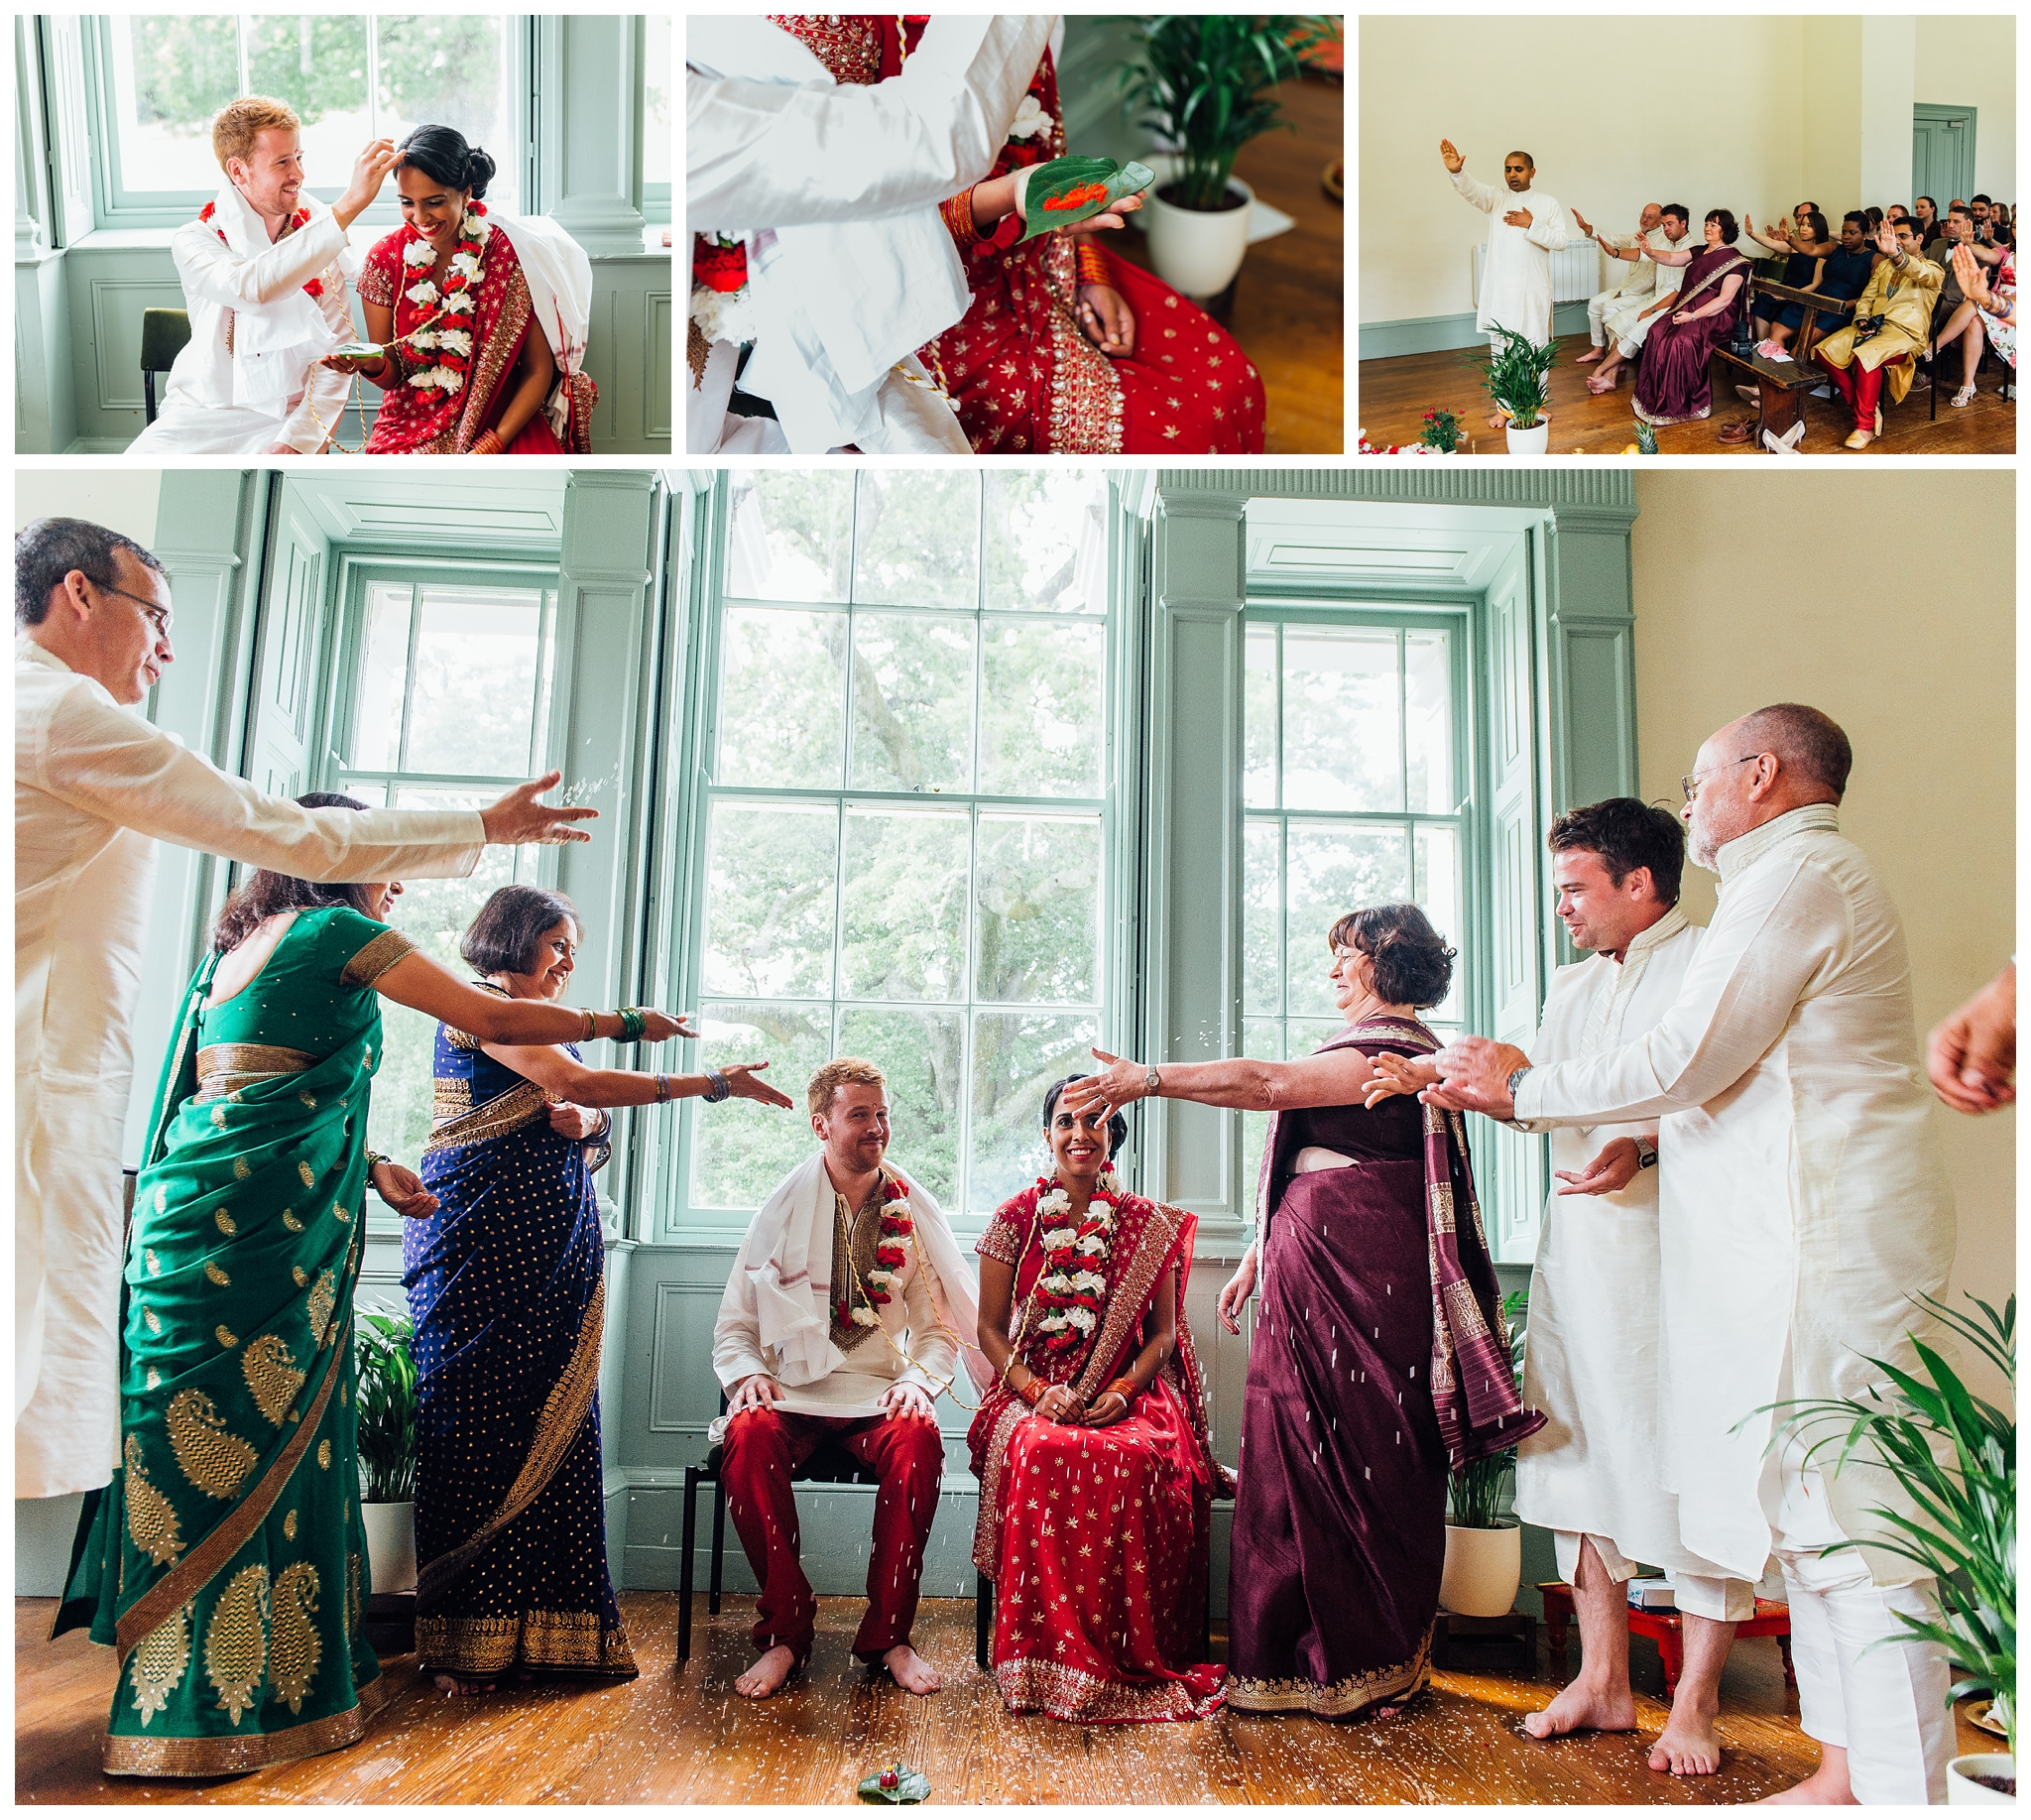 Rich&Dhikshana_Lupton_House_Devon_Hindu_English_Fushion_Wedding_0011.jpg